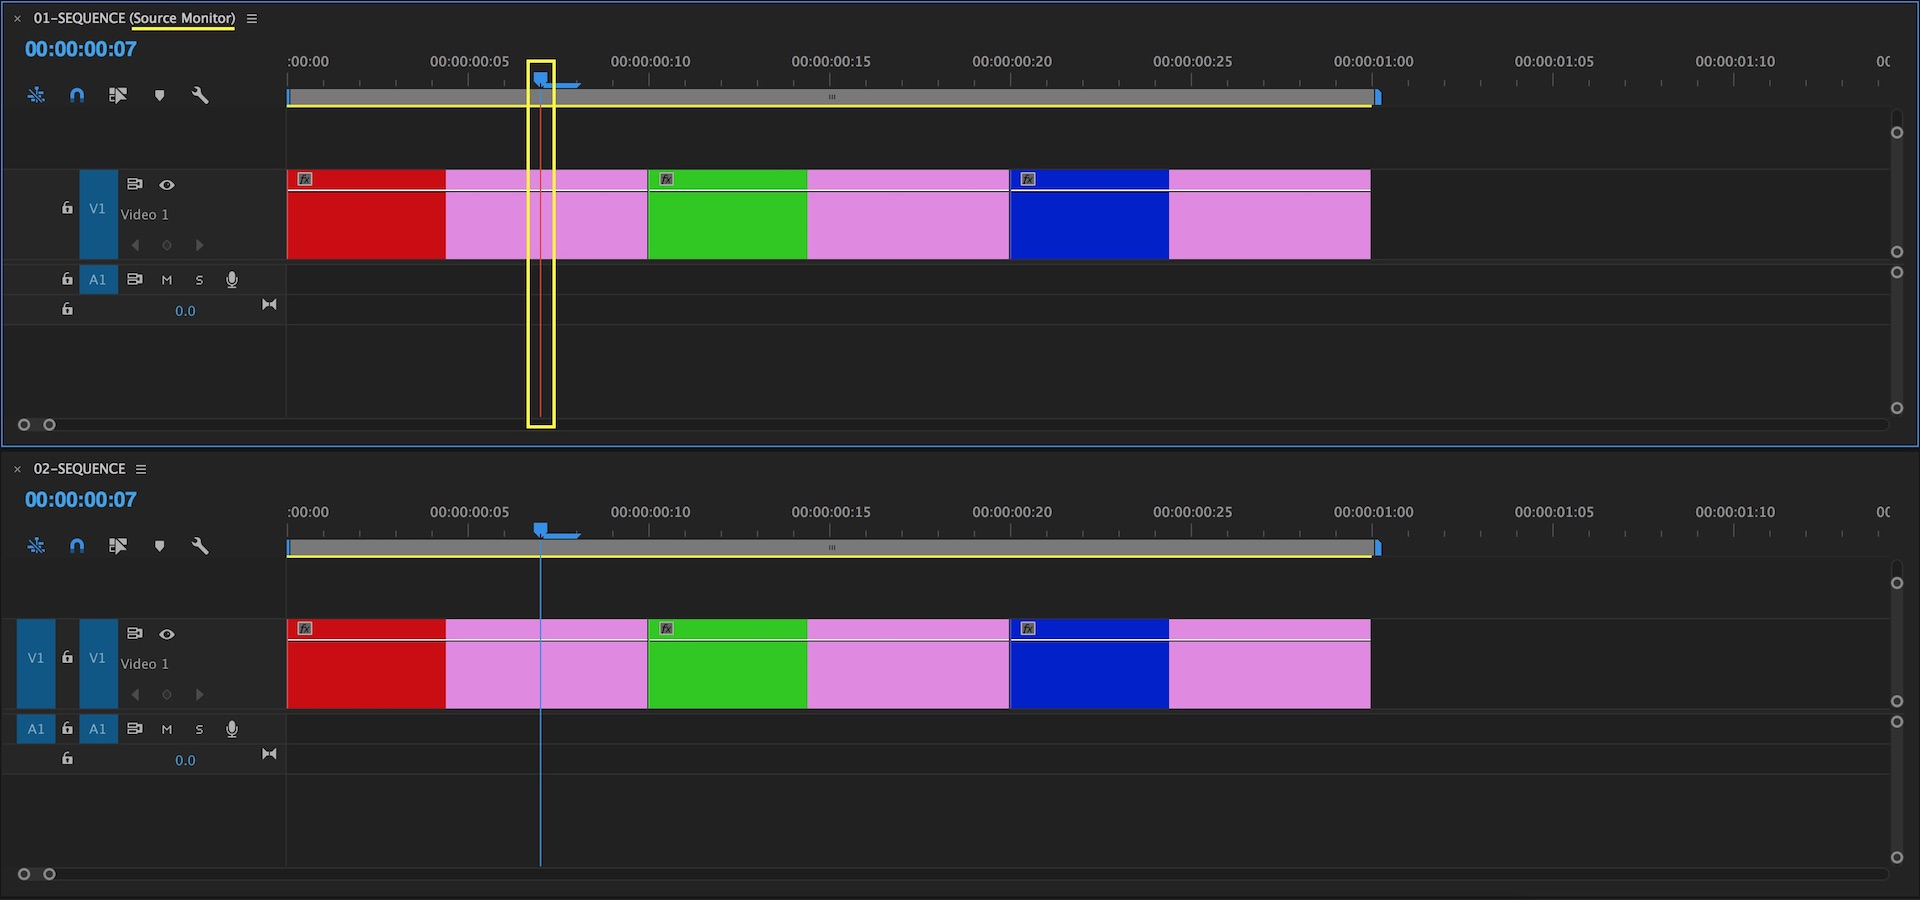 source-monitor-sequence-premiere-pro.jpg